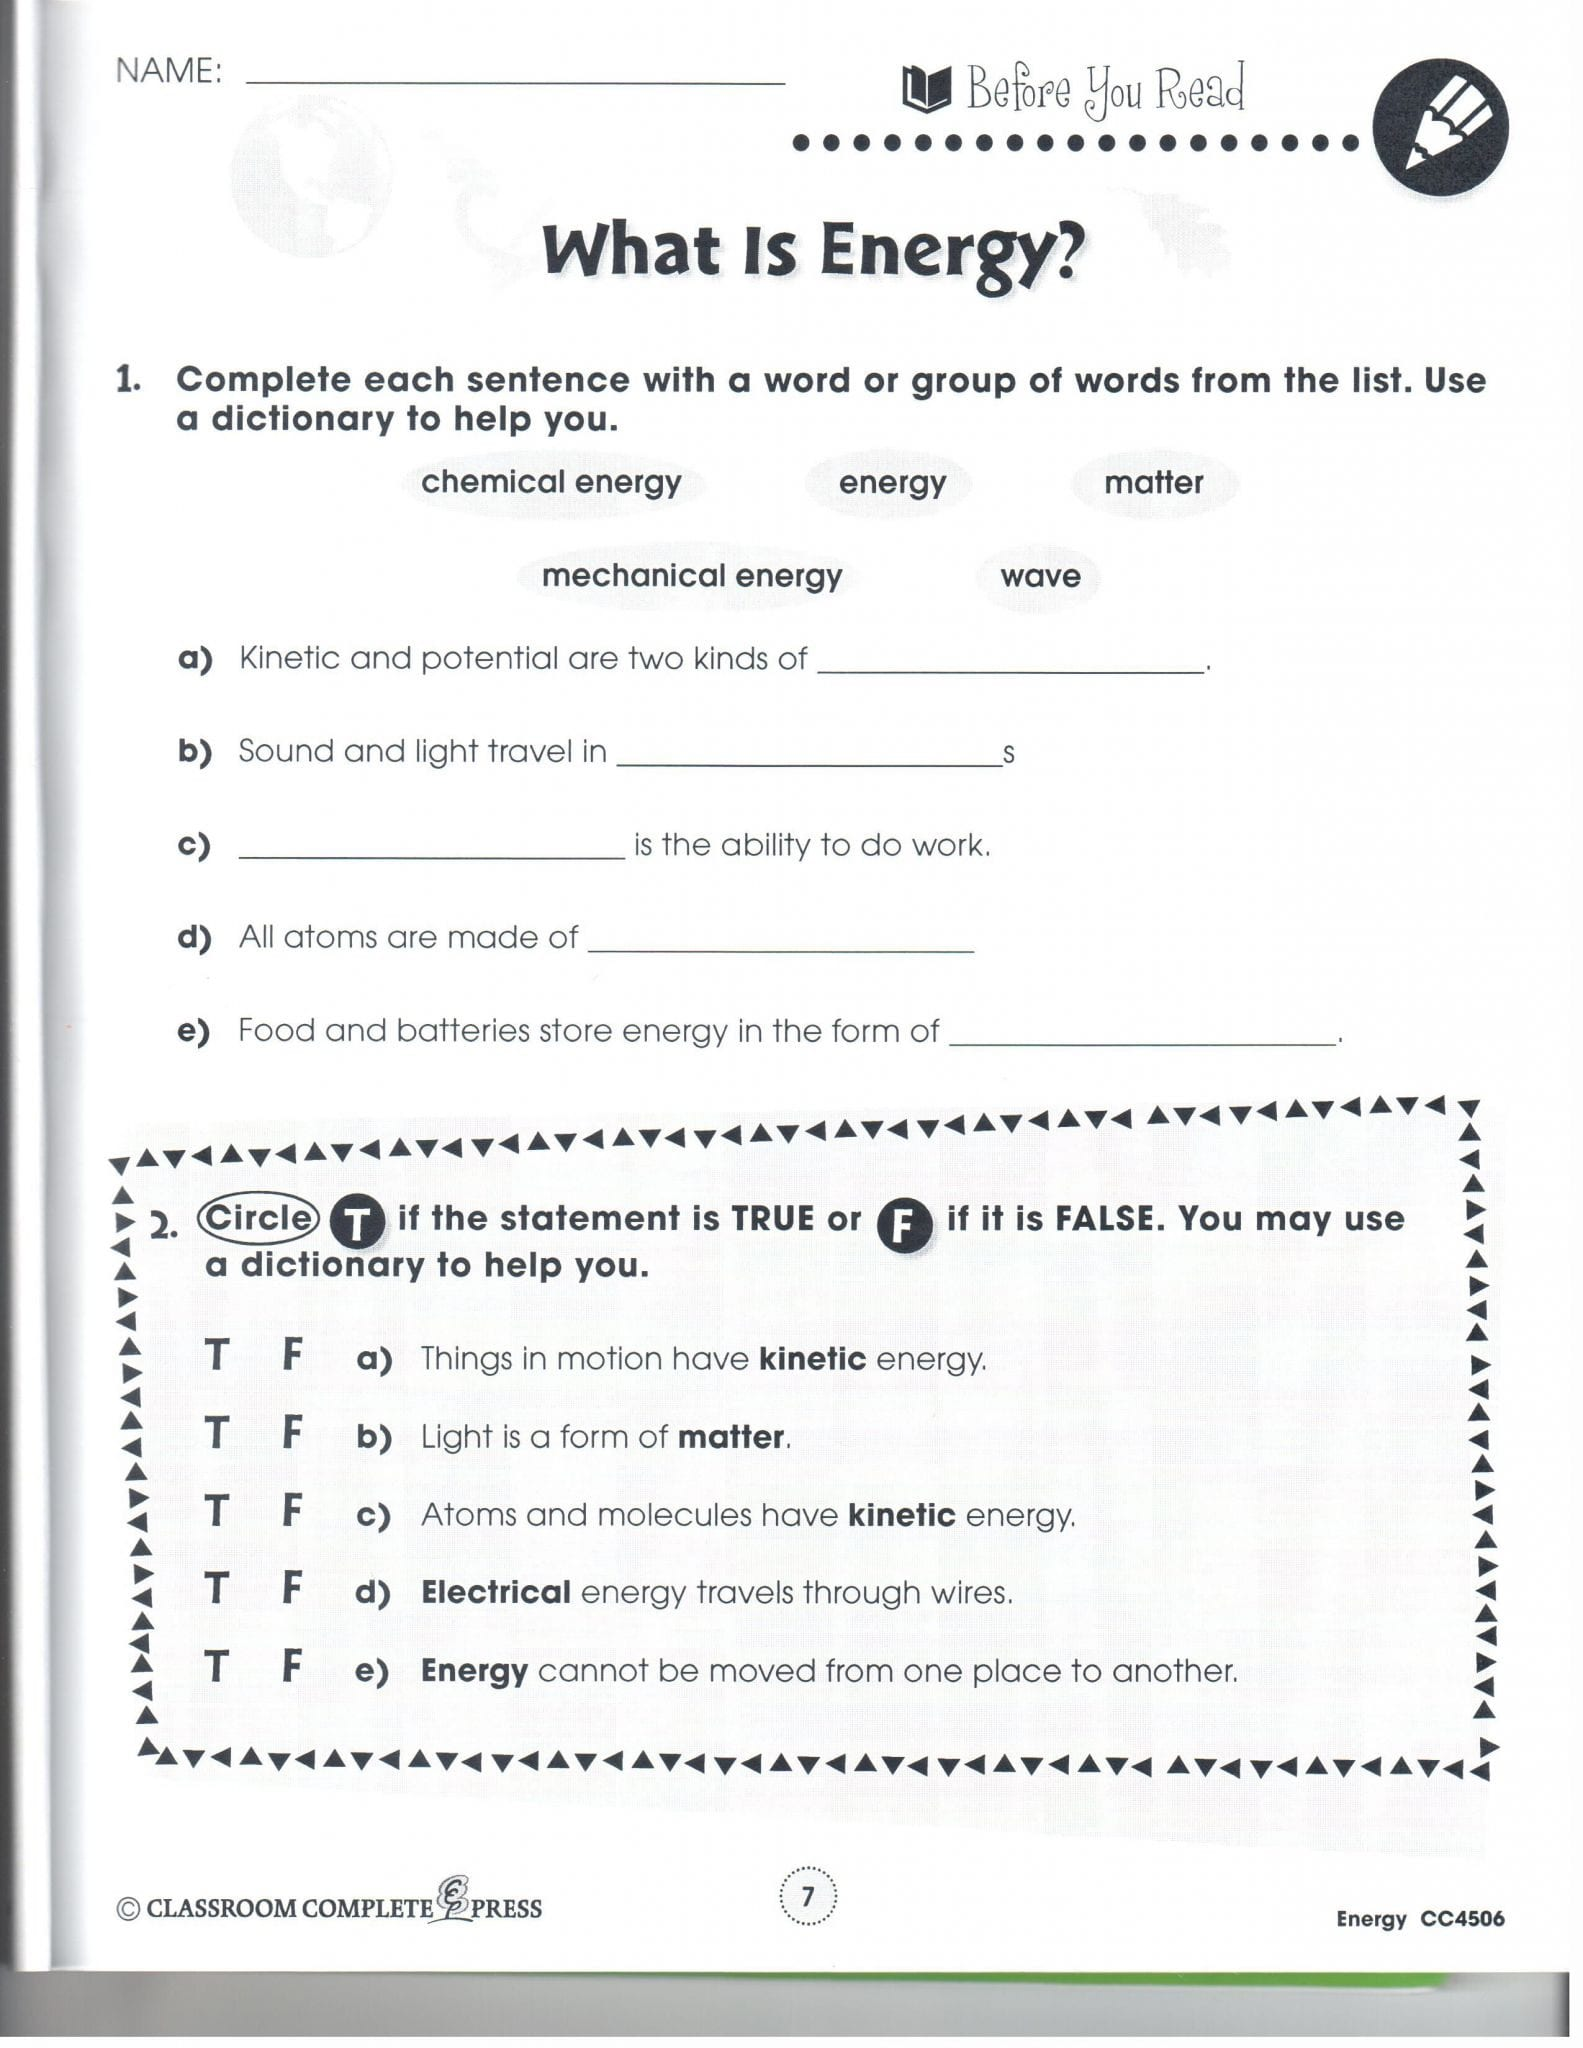 Friction And Gravity Lesson Quiz Worksheet